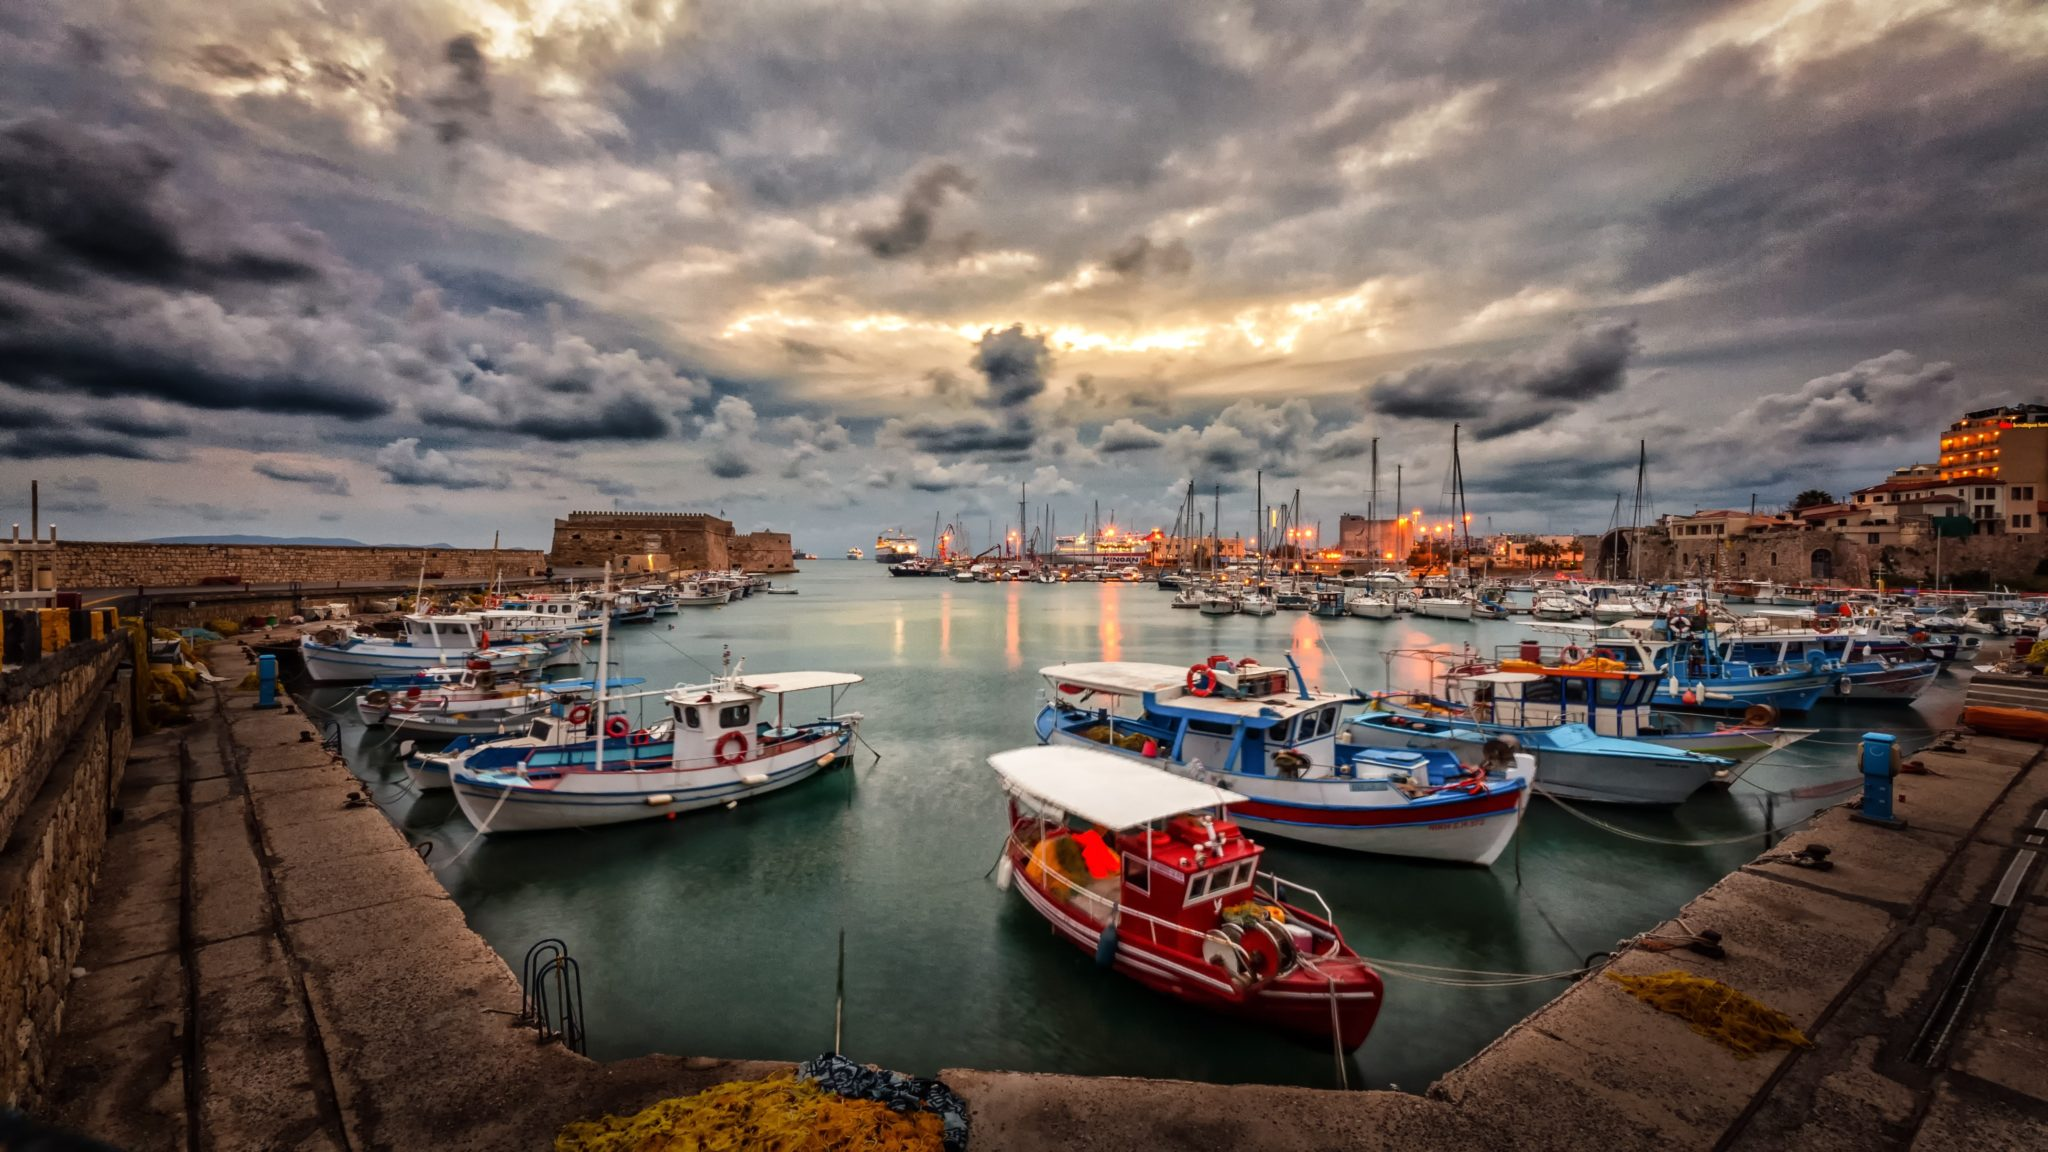 architecture-bay-boats-752882